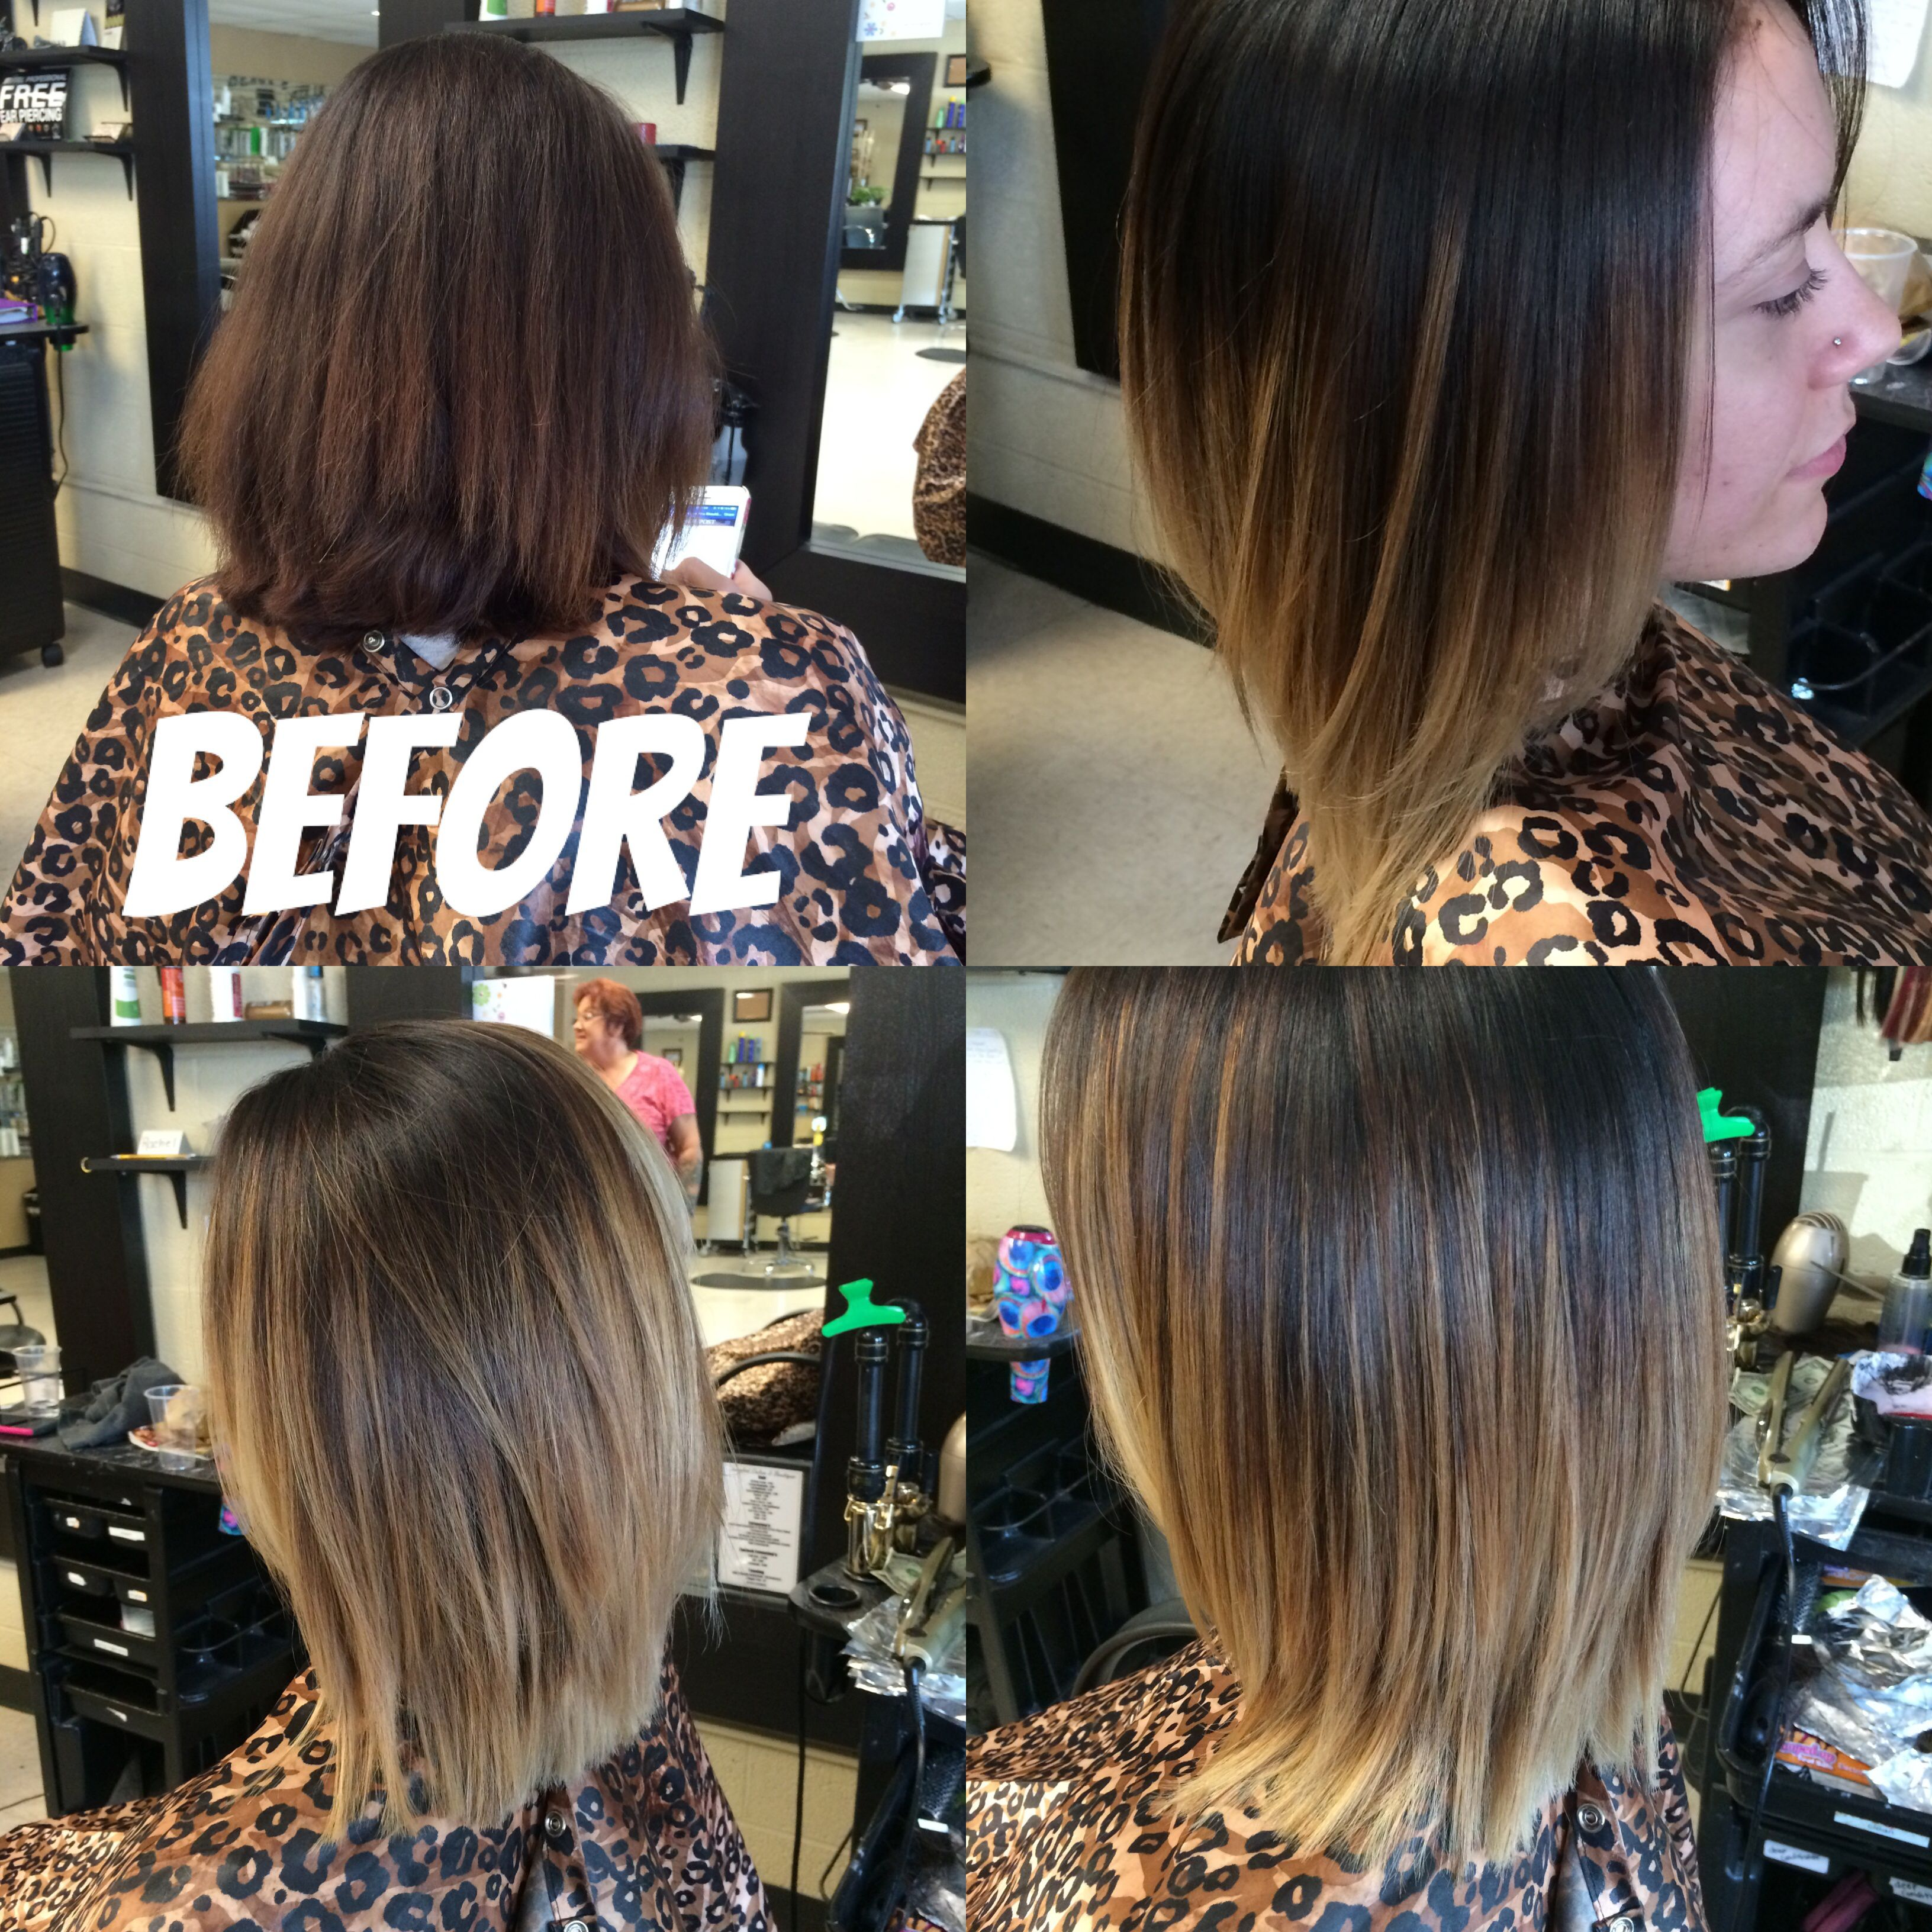 Hair Color Before And After Short Hair Ombre Balayage Women Hair Blonde Ombre Brown To Blonde Ombre Hair Color Ideas